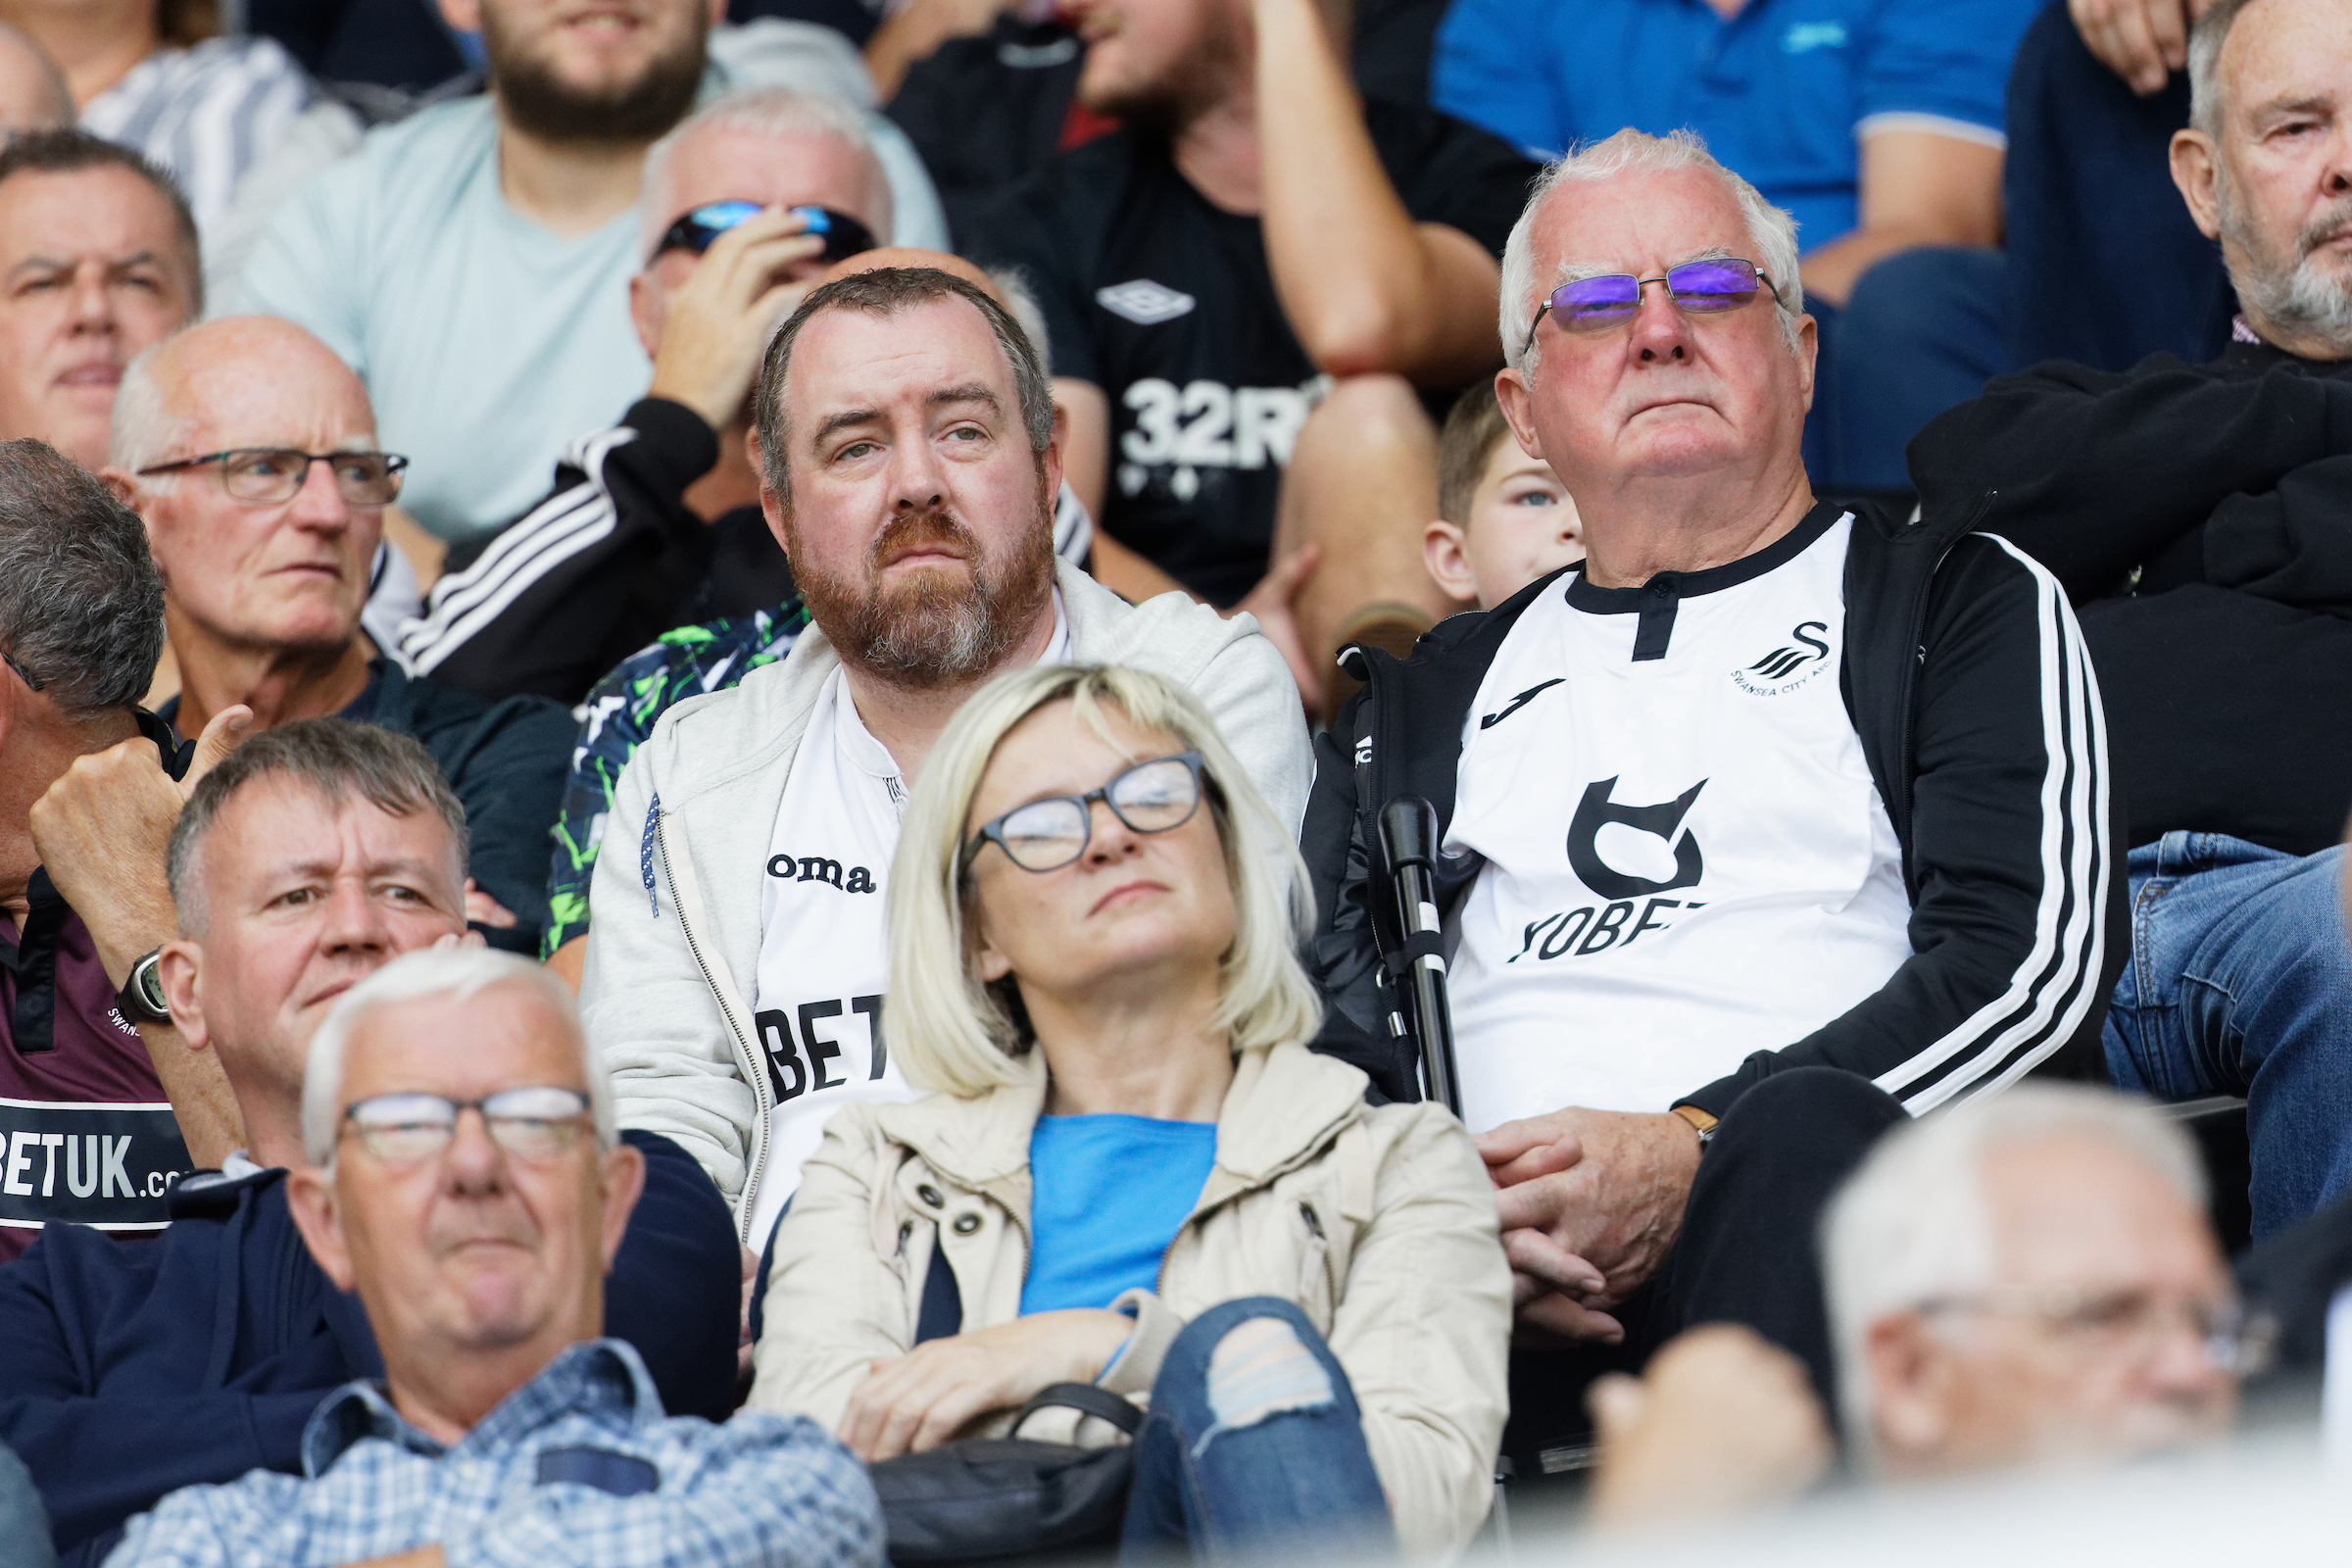 Swansea City supporters